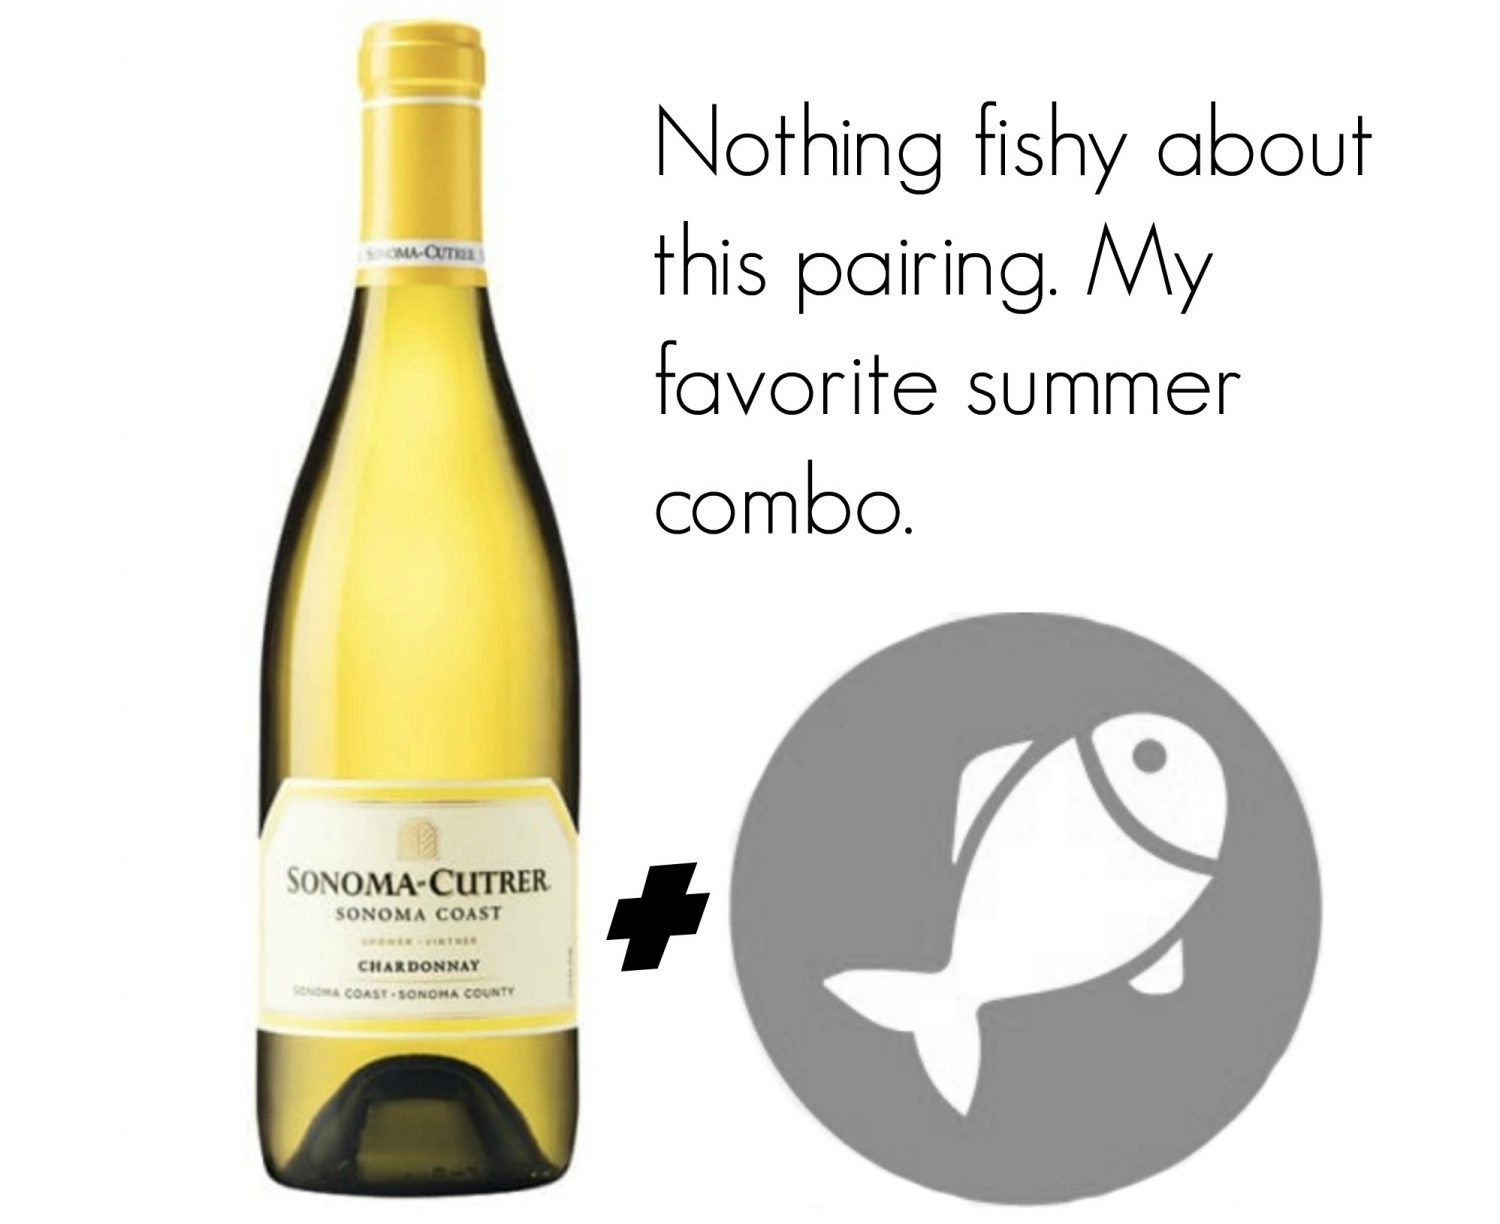 The motherchic favorite summer wines